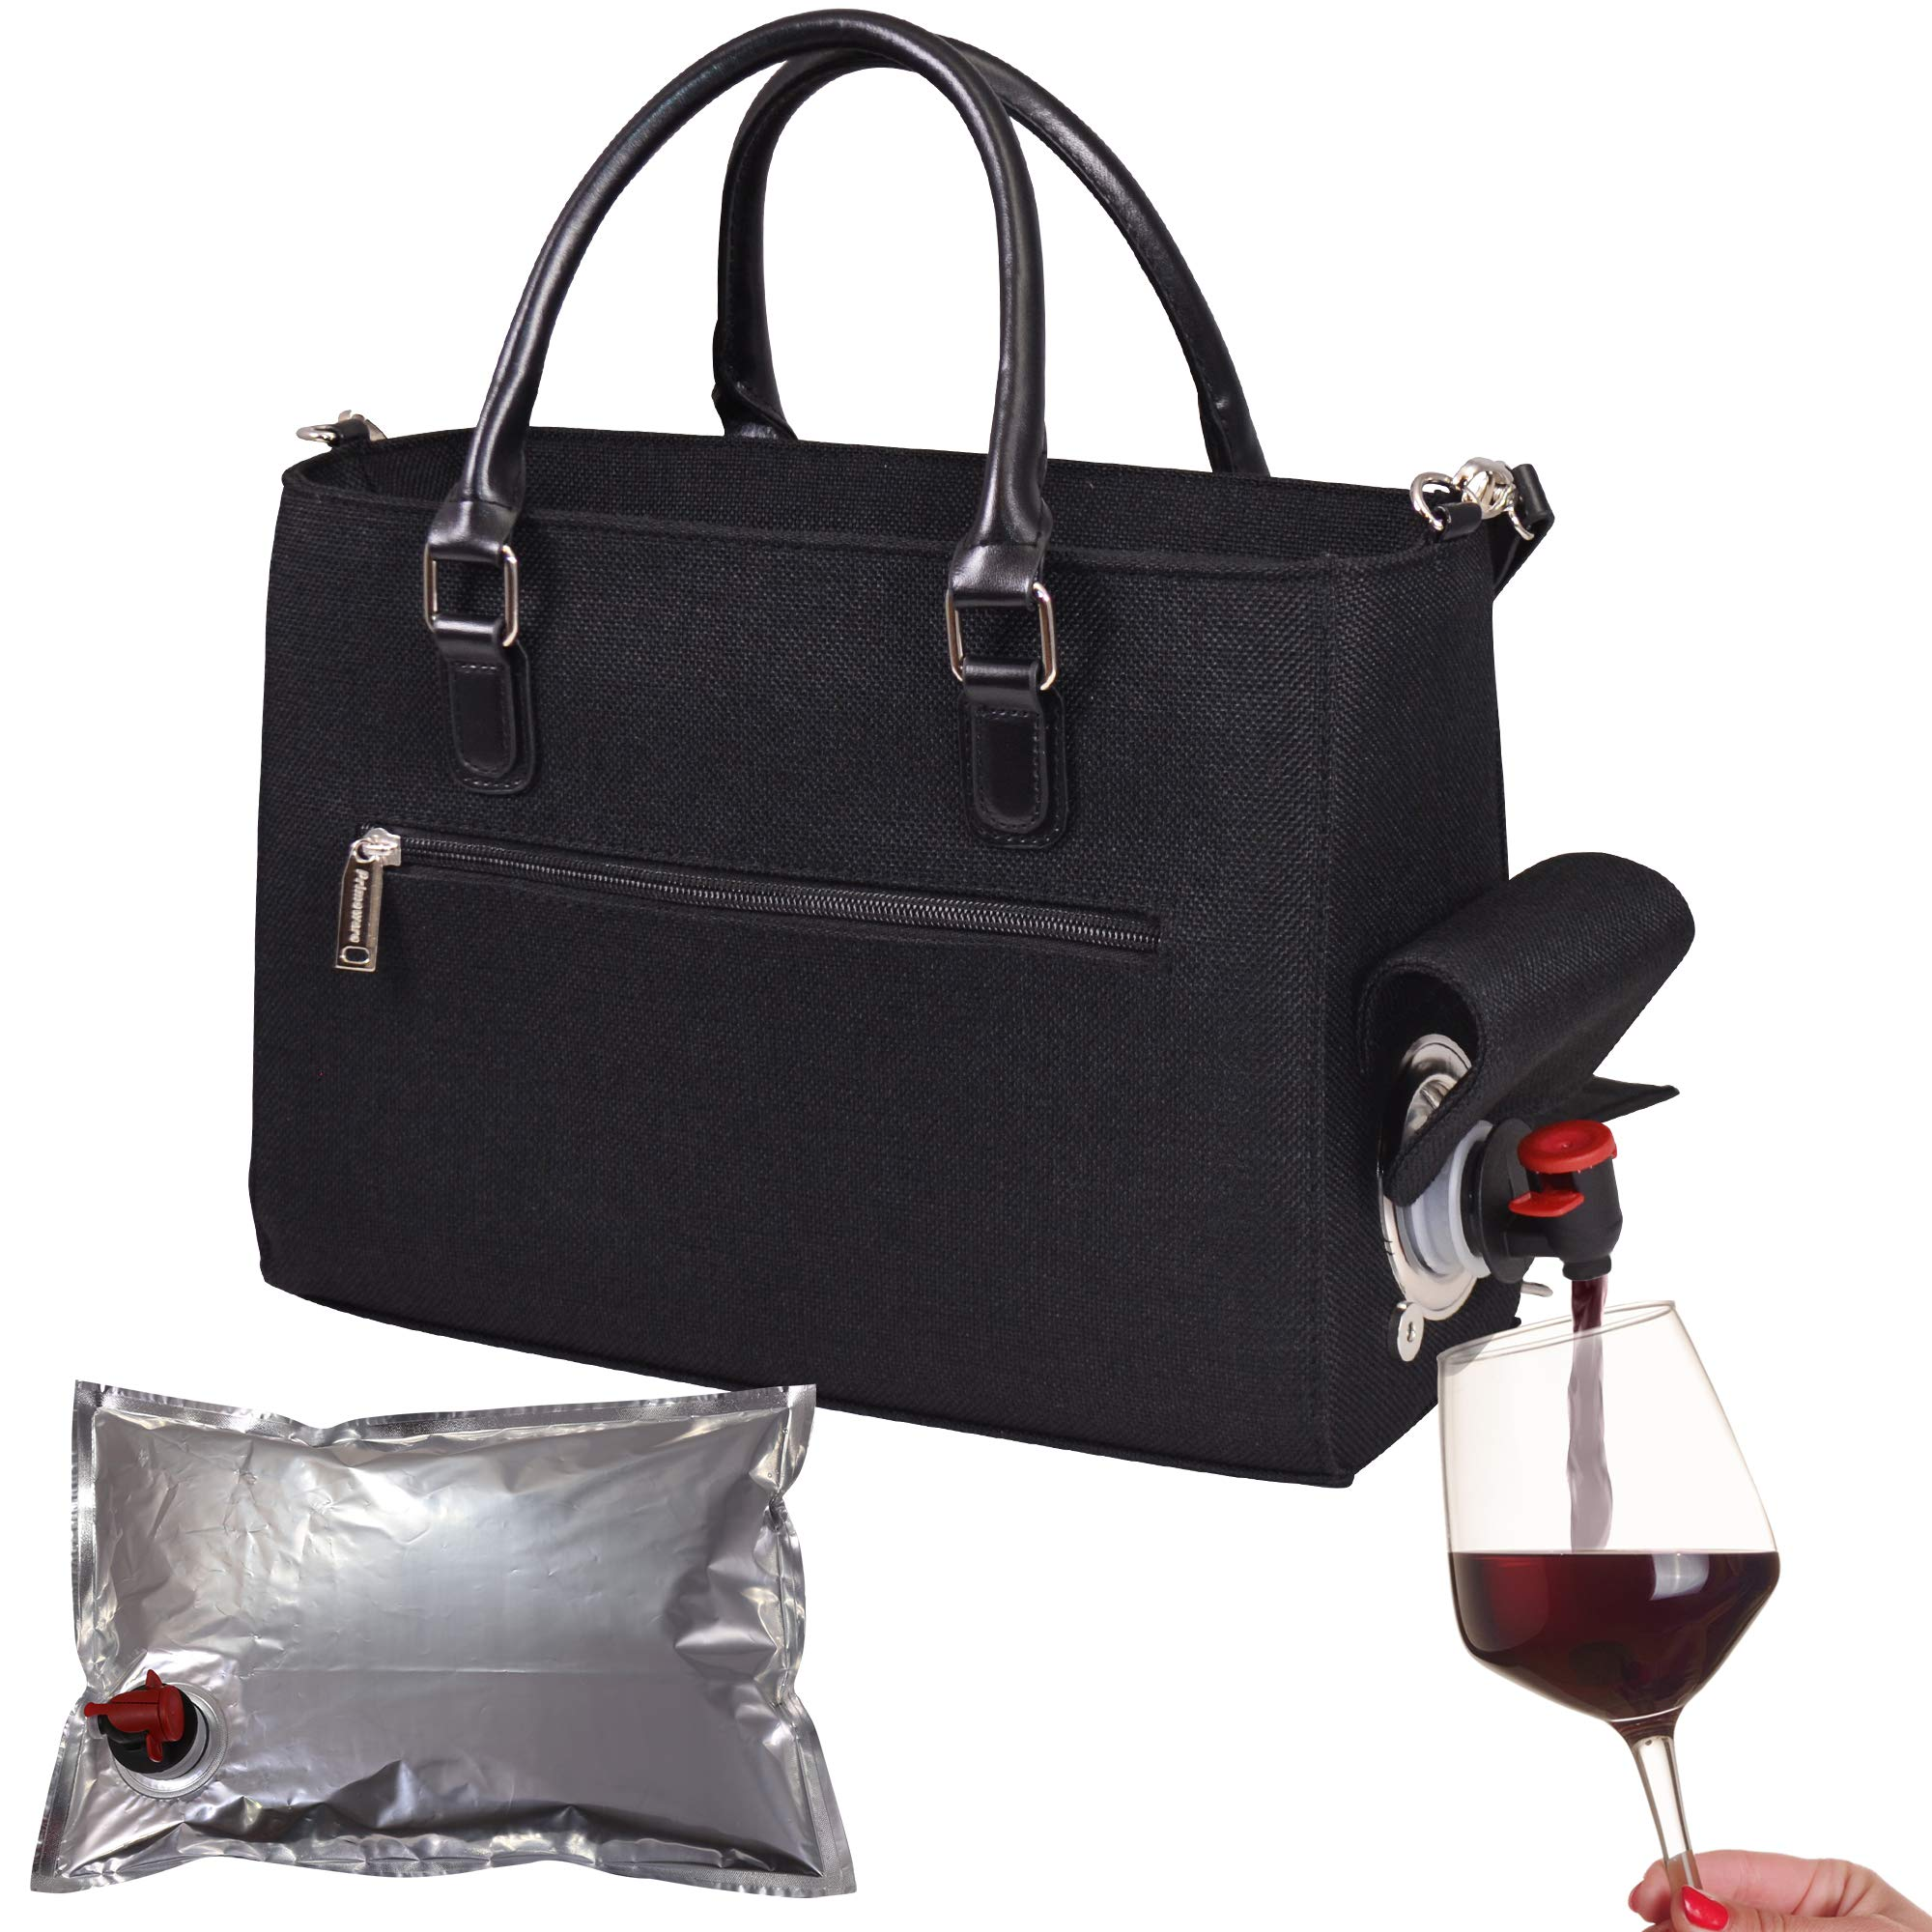 Primeware Insulated Drink Purse w/ 3L Bladder Bag | Thermal Hot and Cold Storage | Portable Drinking Dispenser for Wine, Cocktails, Beer, Alcohol | PU Leather Finish (Black Linen)